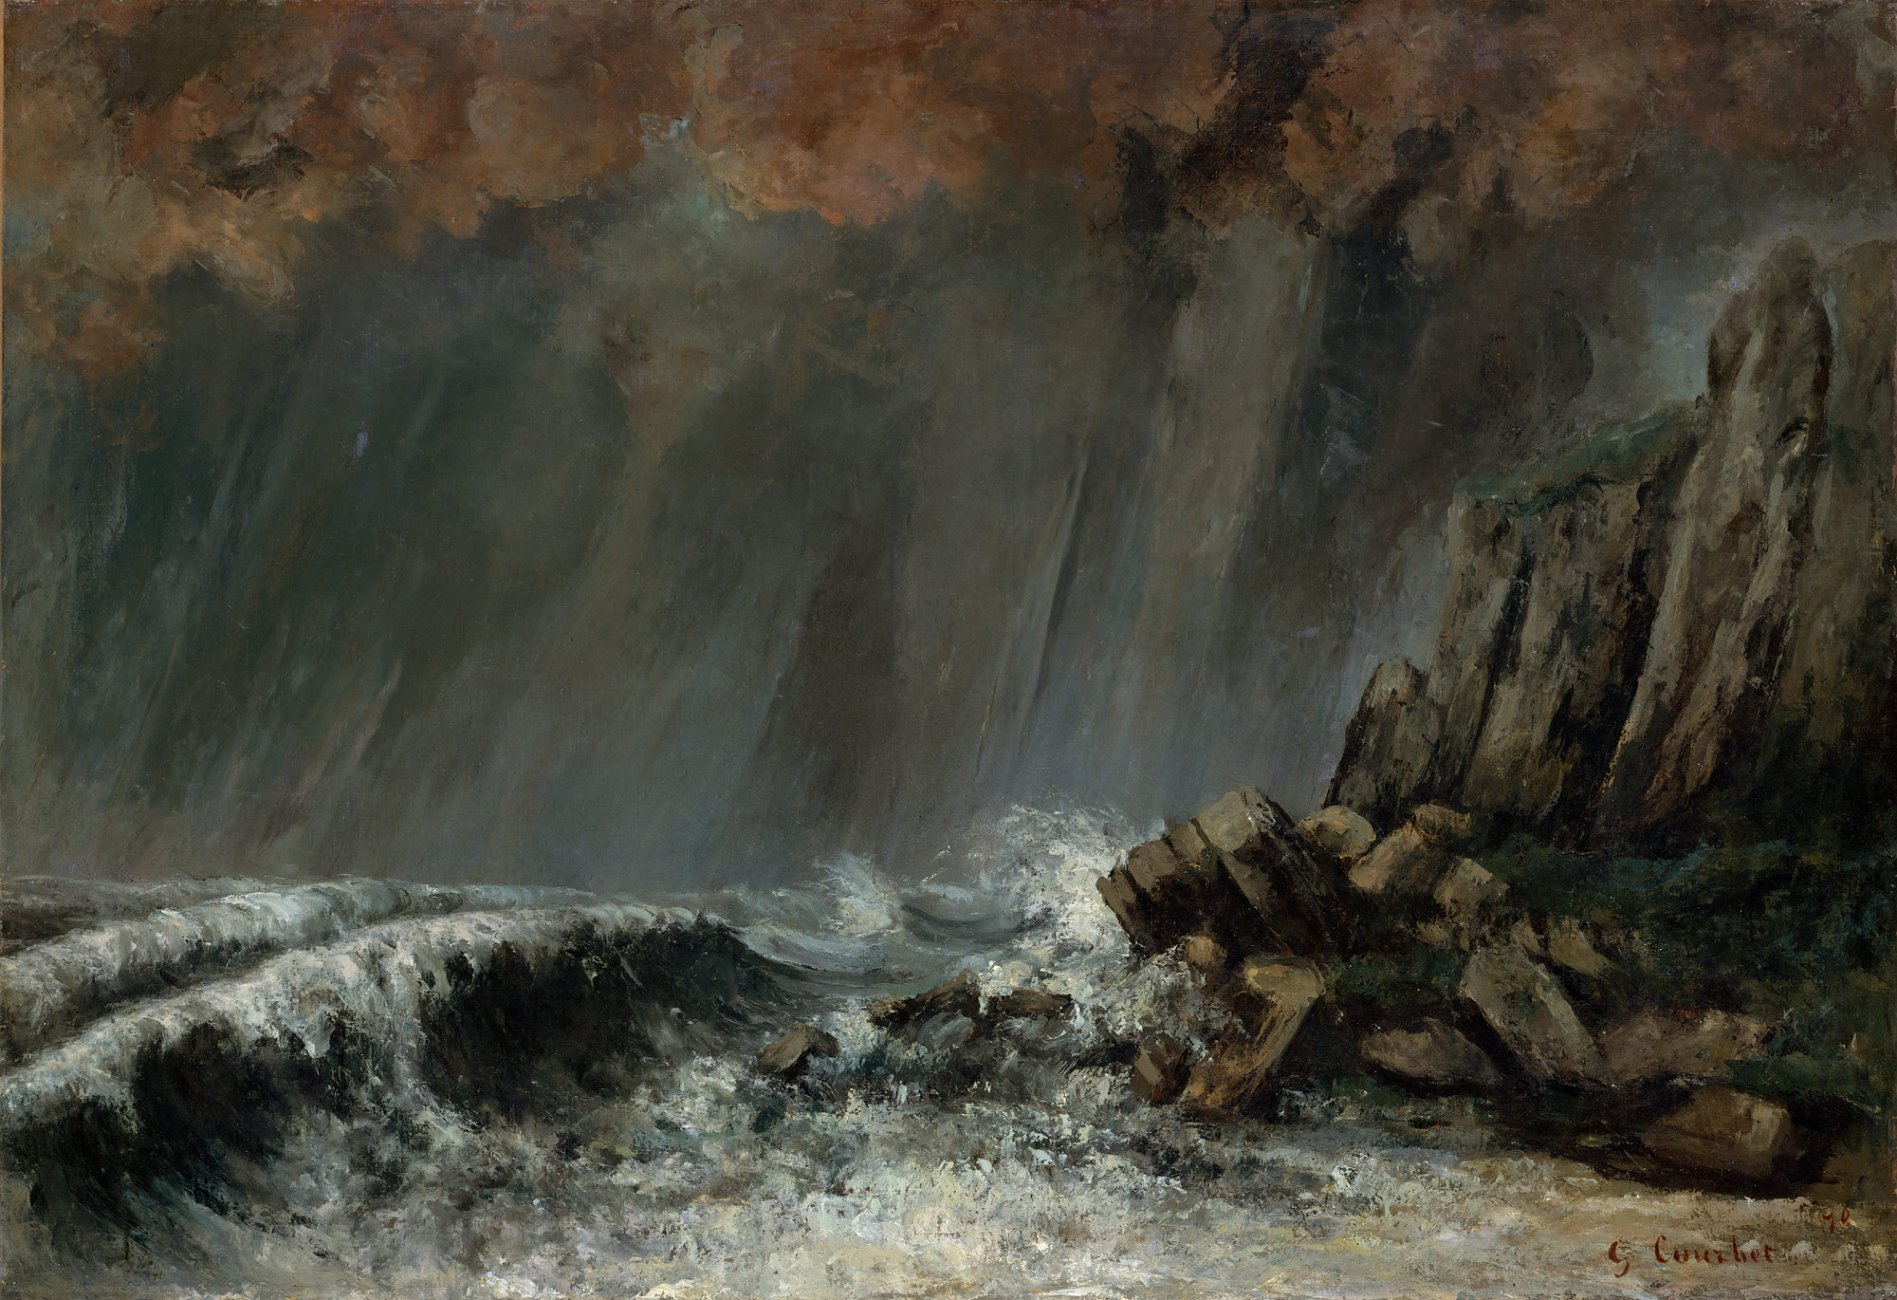 Gustave Courbet hb_29.160.35.jpg